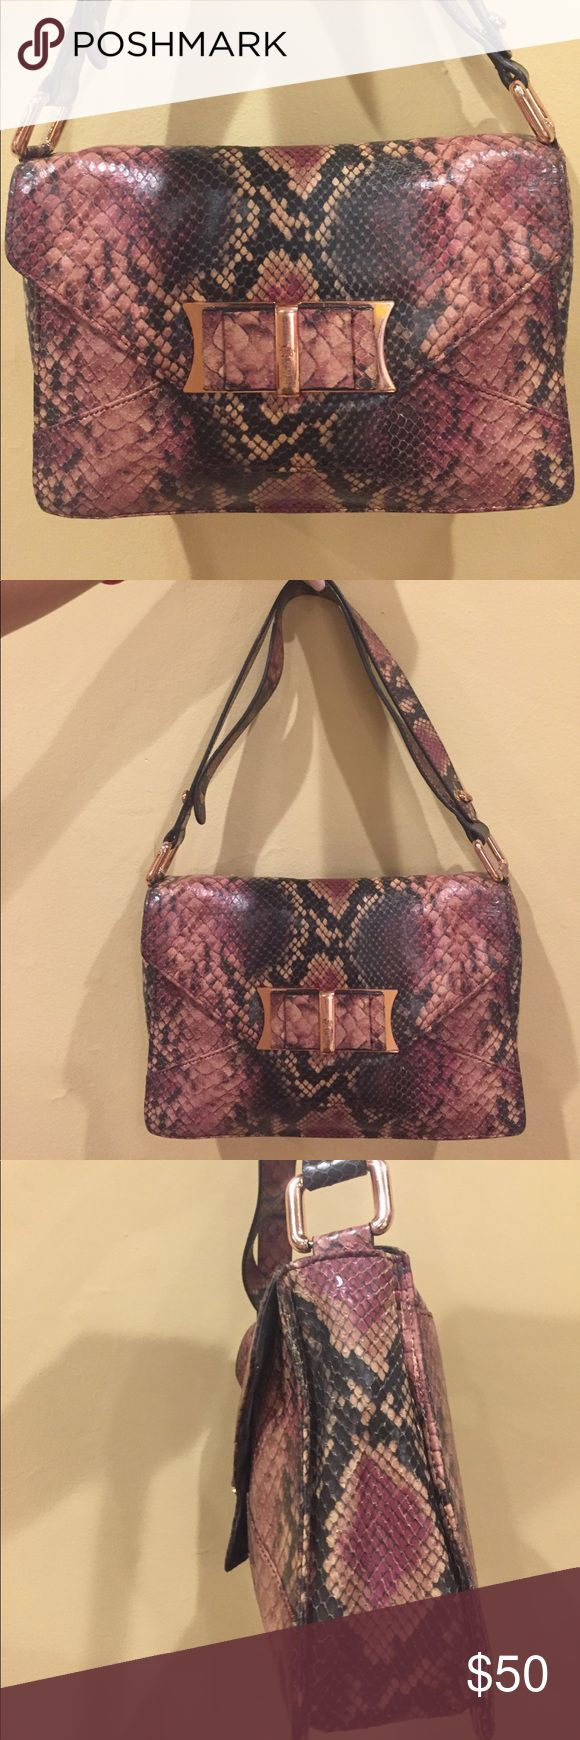 Ted baker rattle snake purse with strap Ted baker rattle snake purse with strap. Zipper inside bag. Magnetic snap. Excellent condition! Ted Baker Bags Shoulder Bags